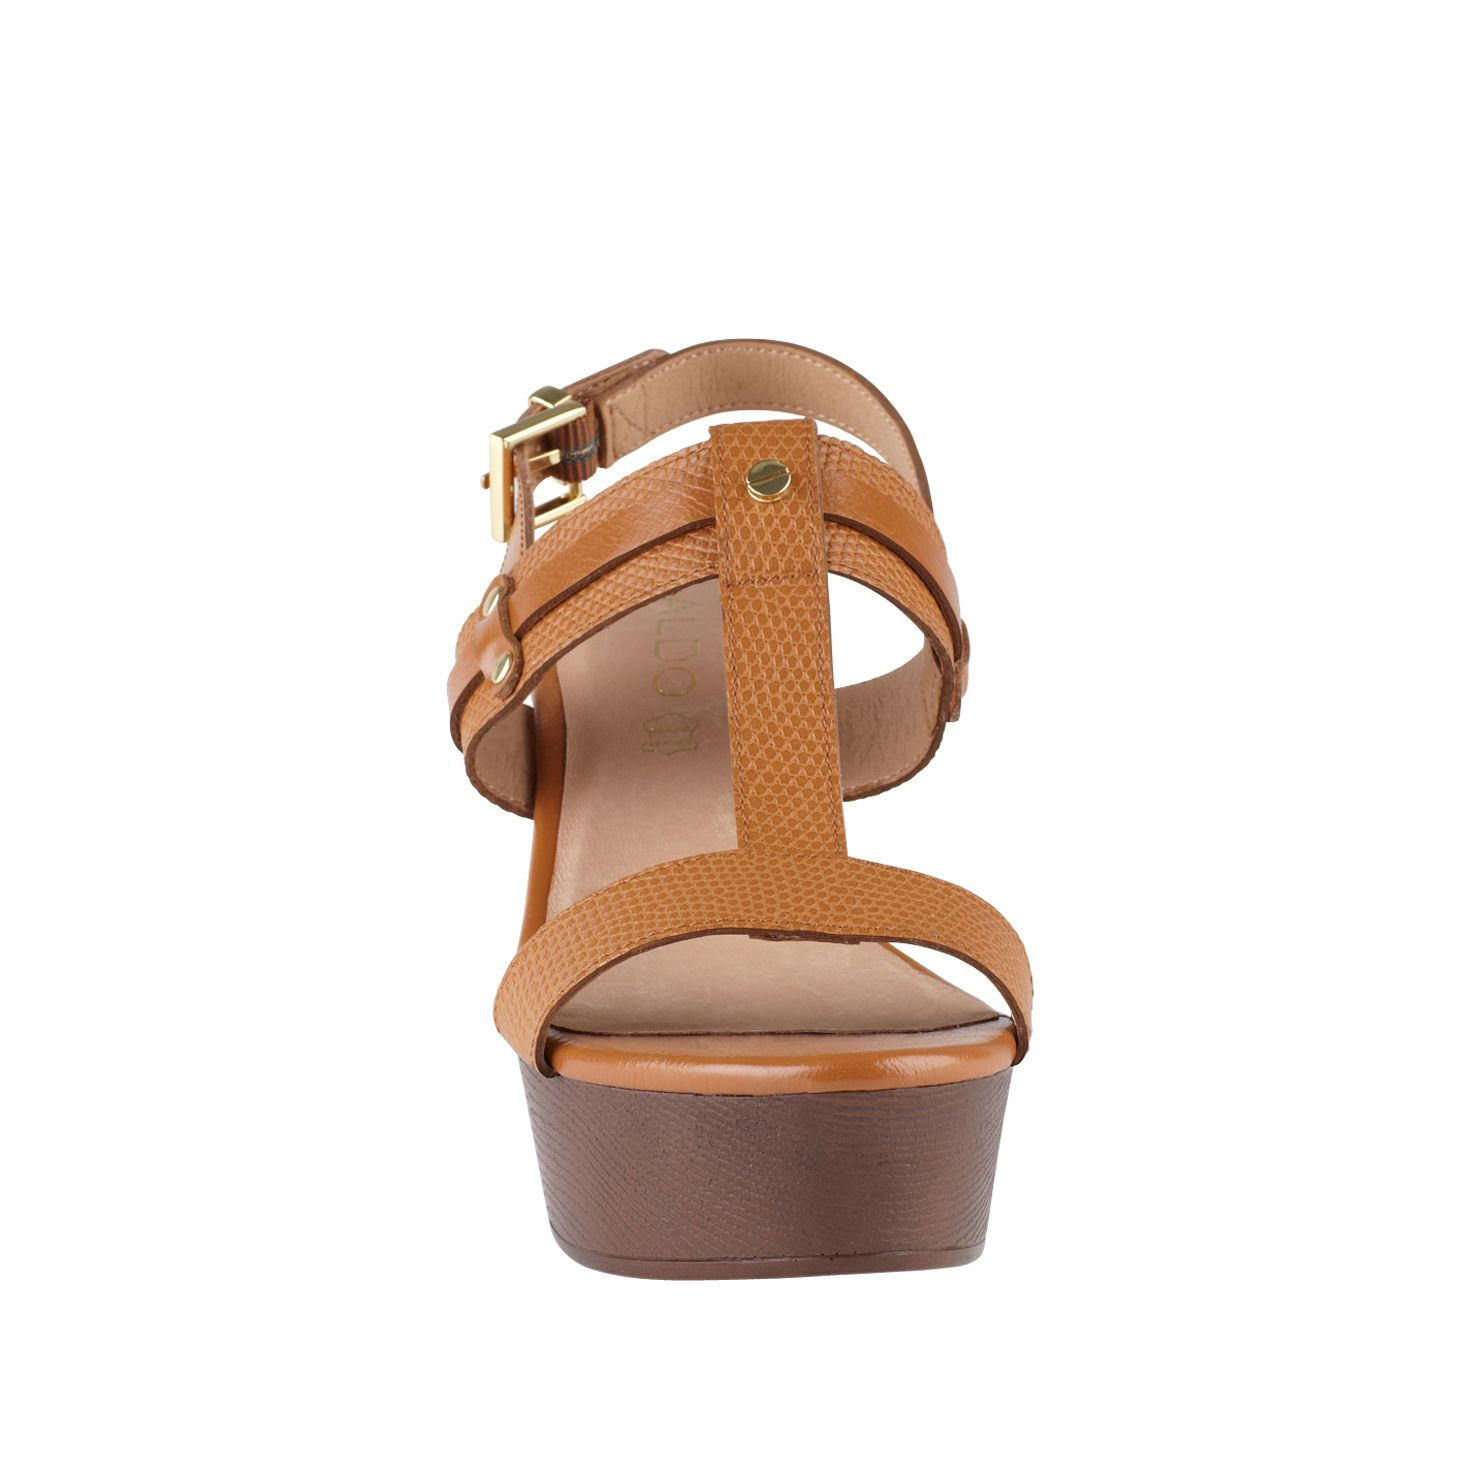 Abbaziz wedge sandals